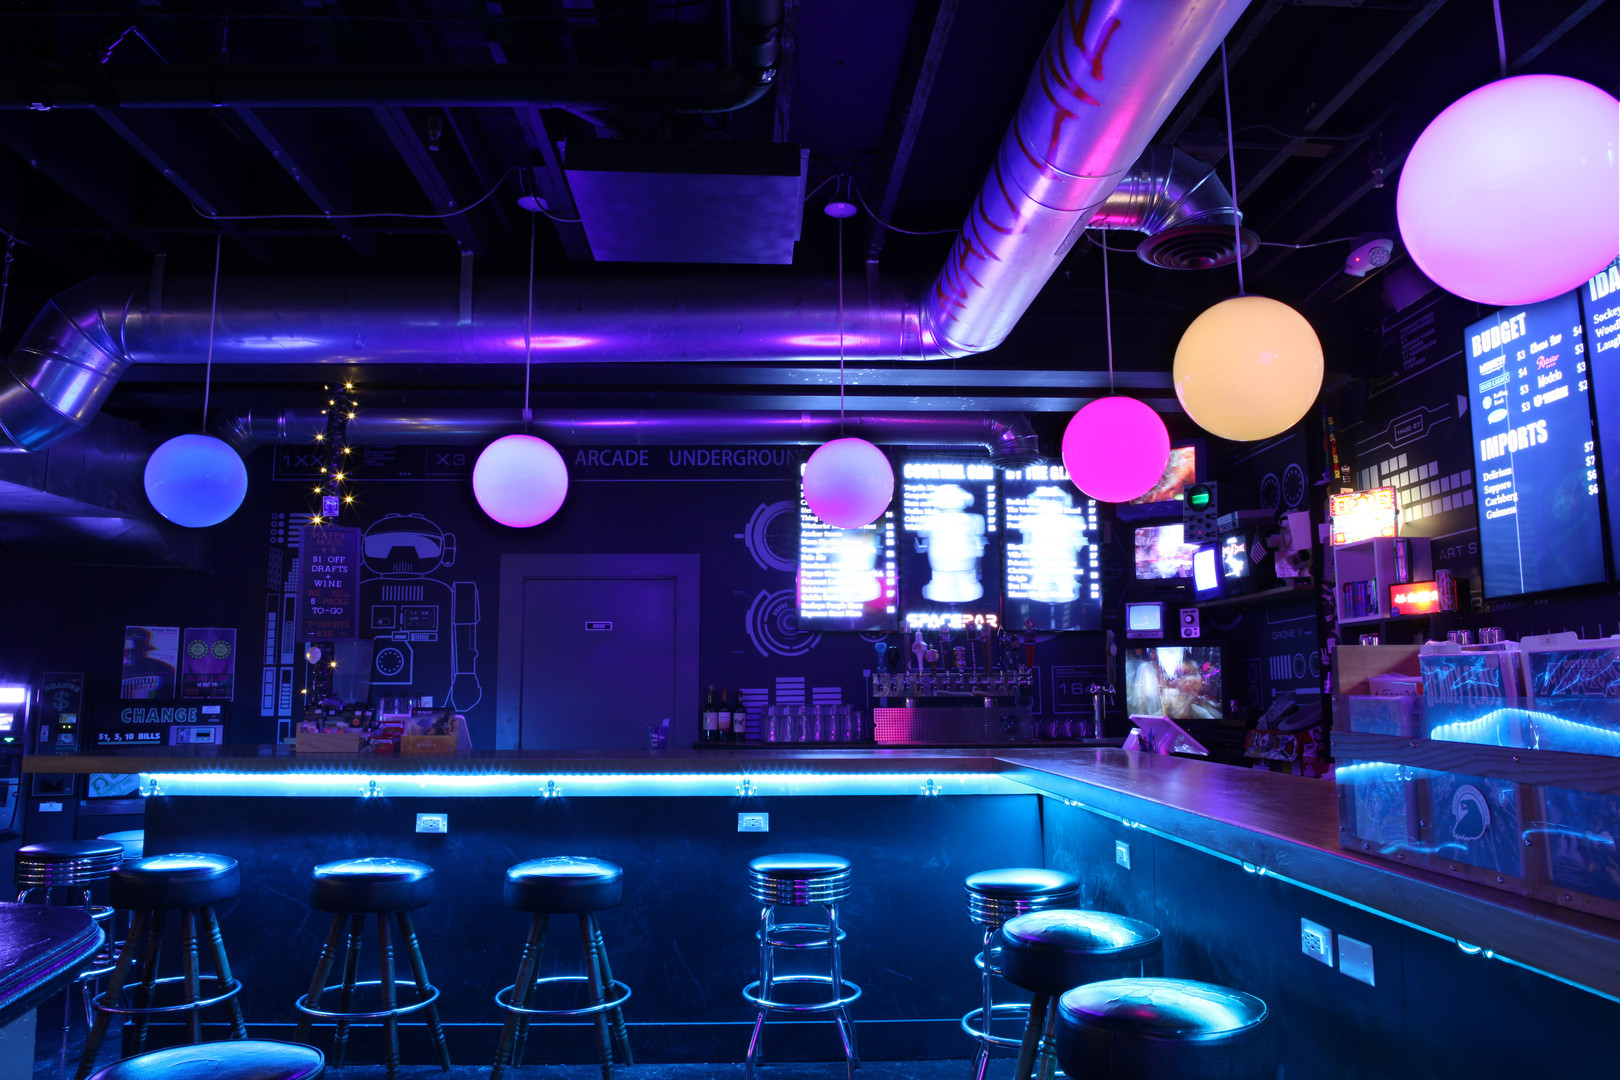 Spacebar-Arcade-Boise-Bar